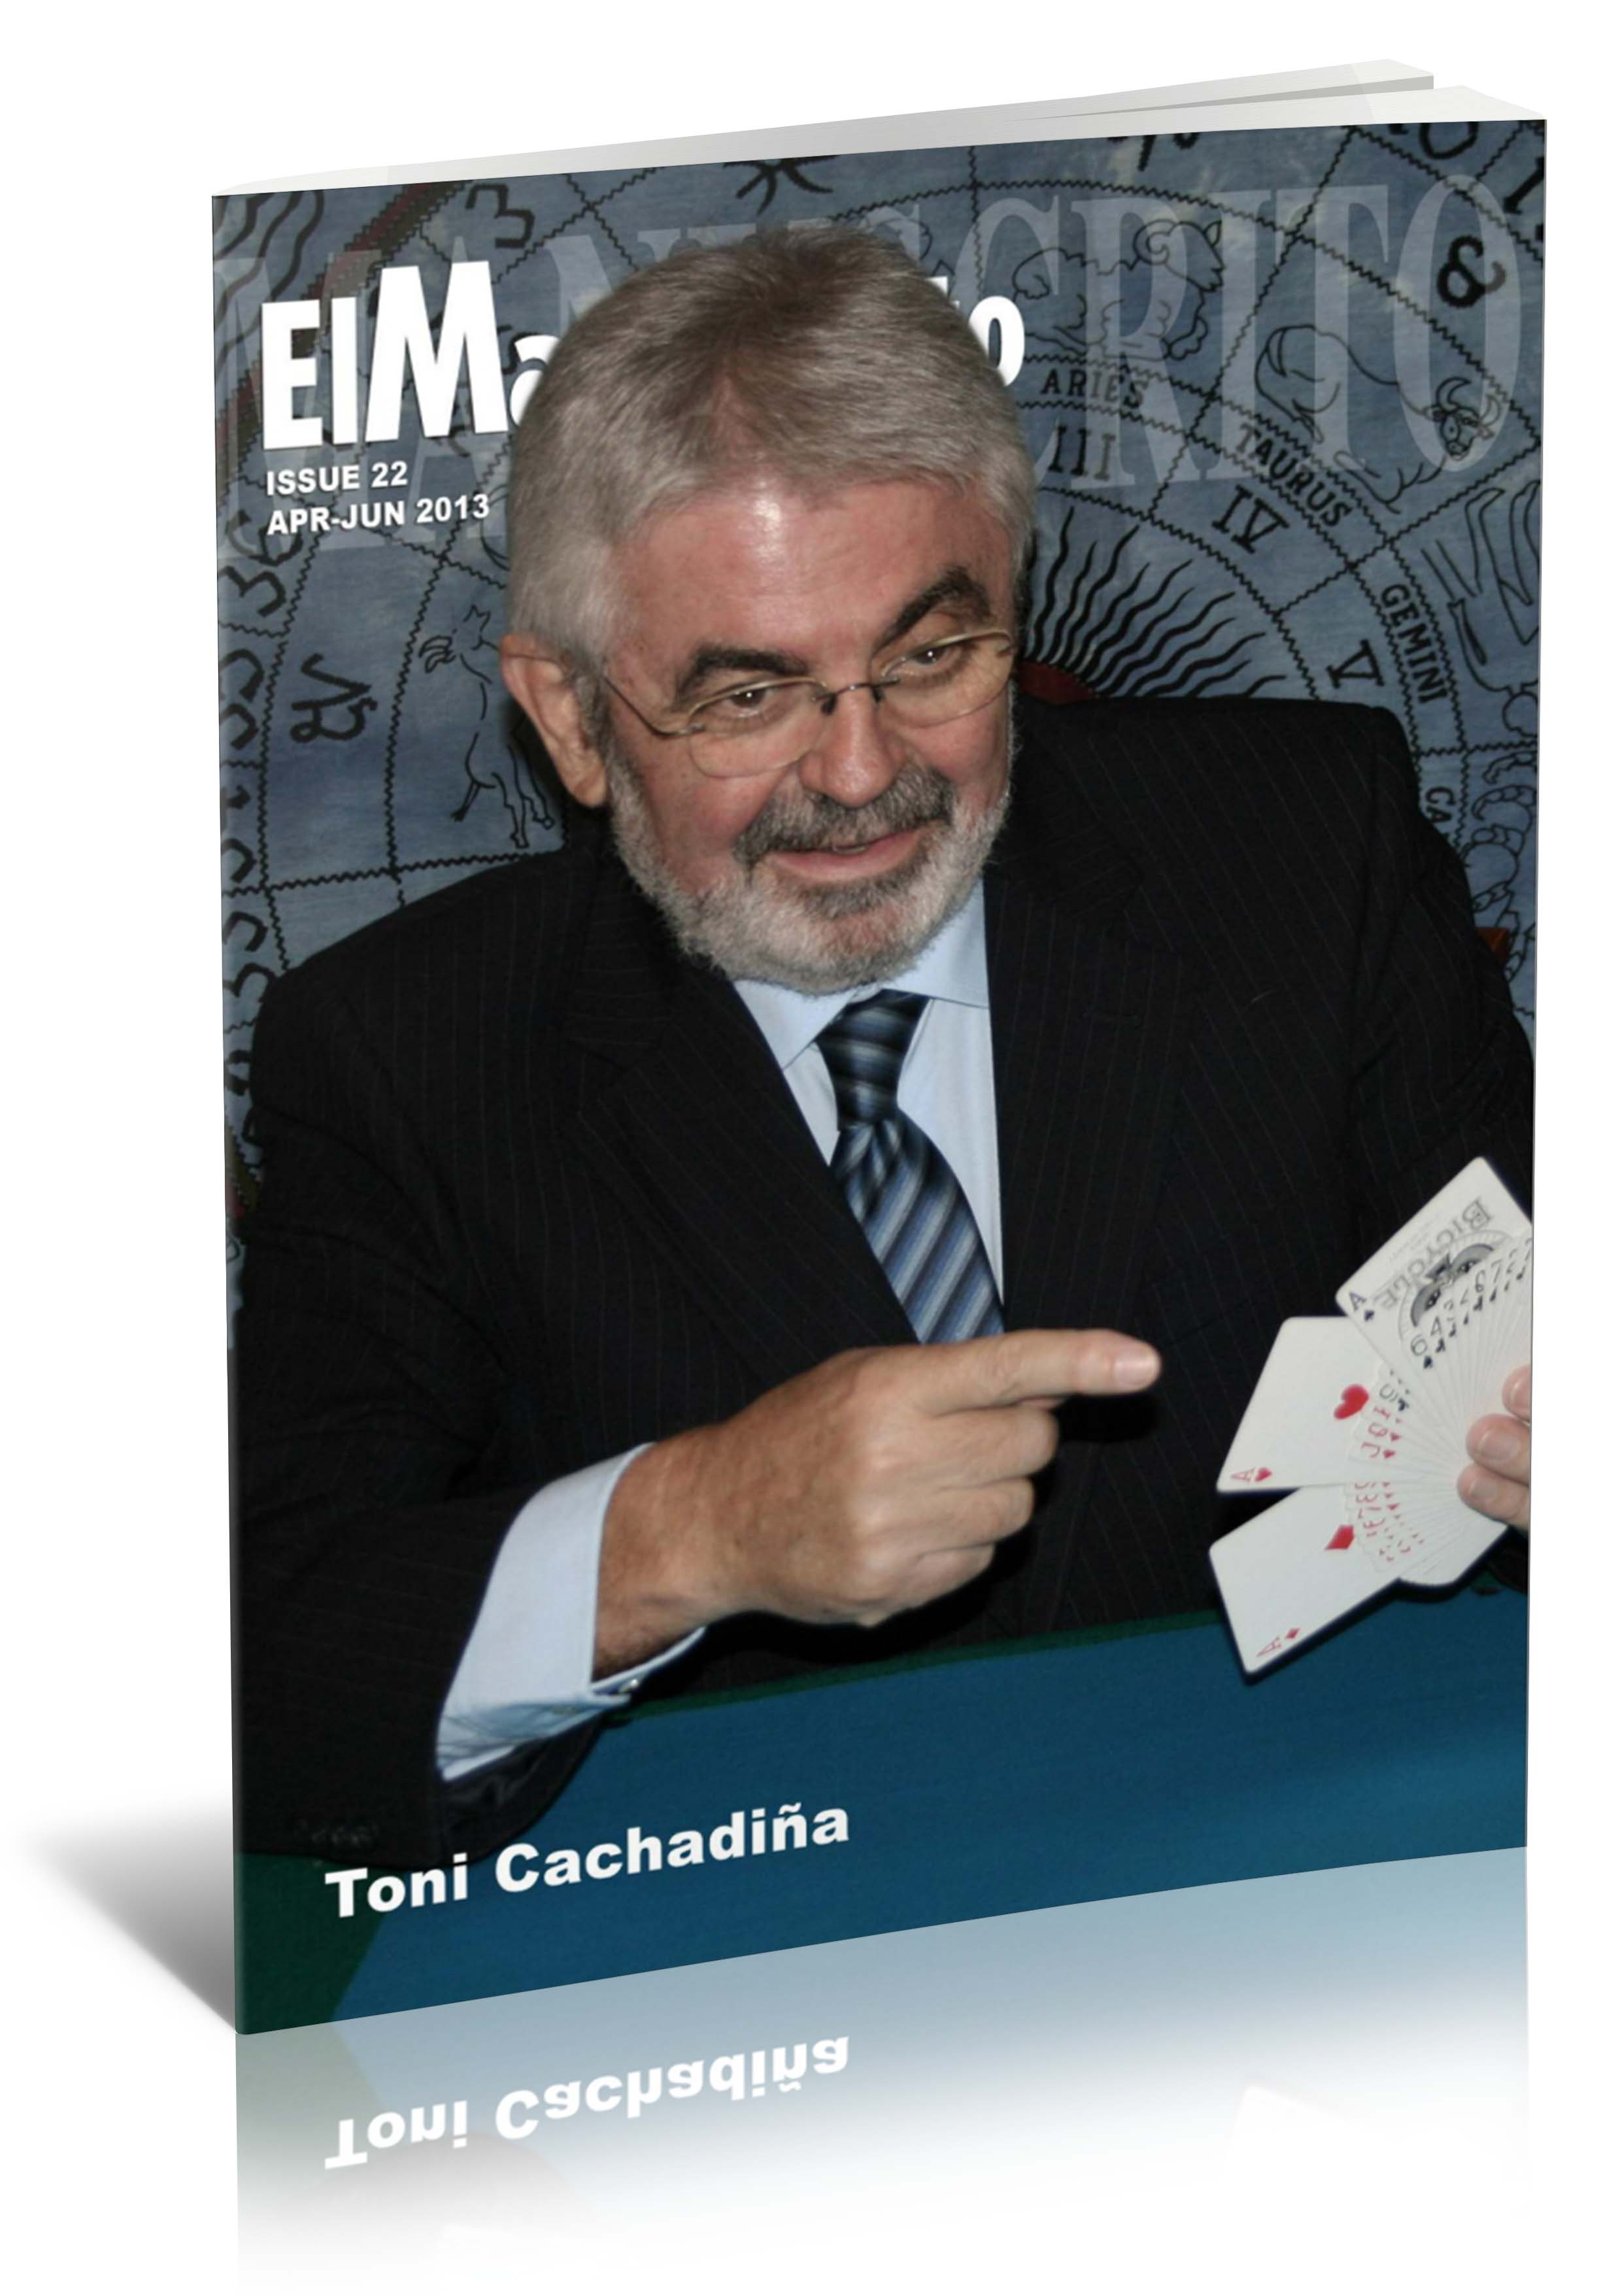 El Manuscrito 22 - Toni Cachadiña (English)